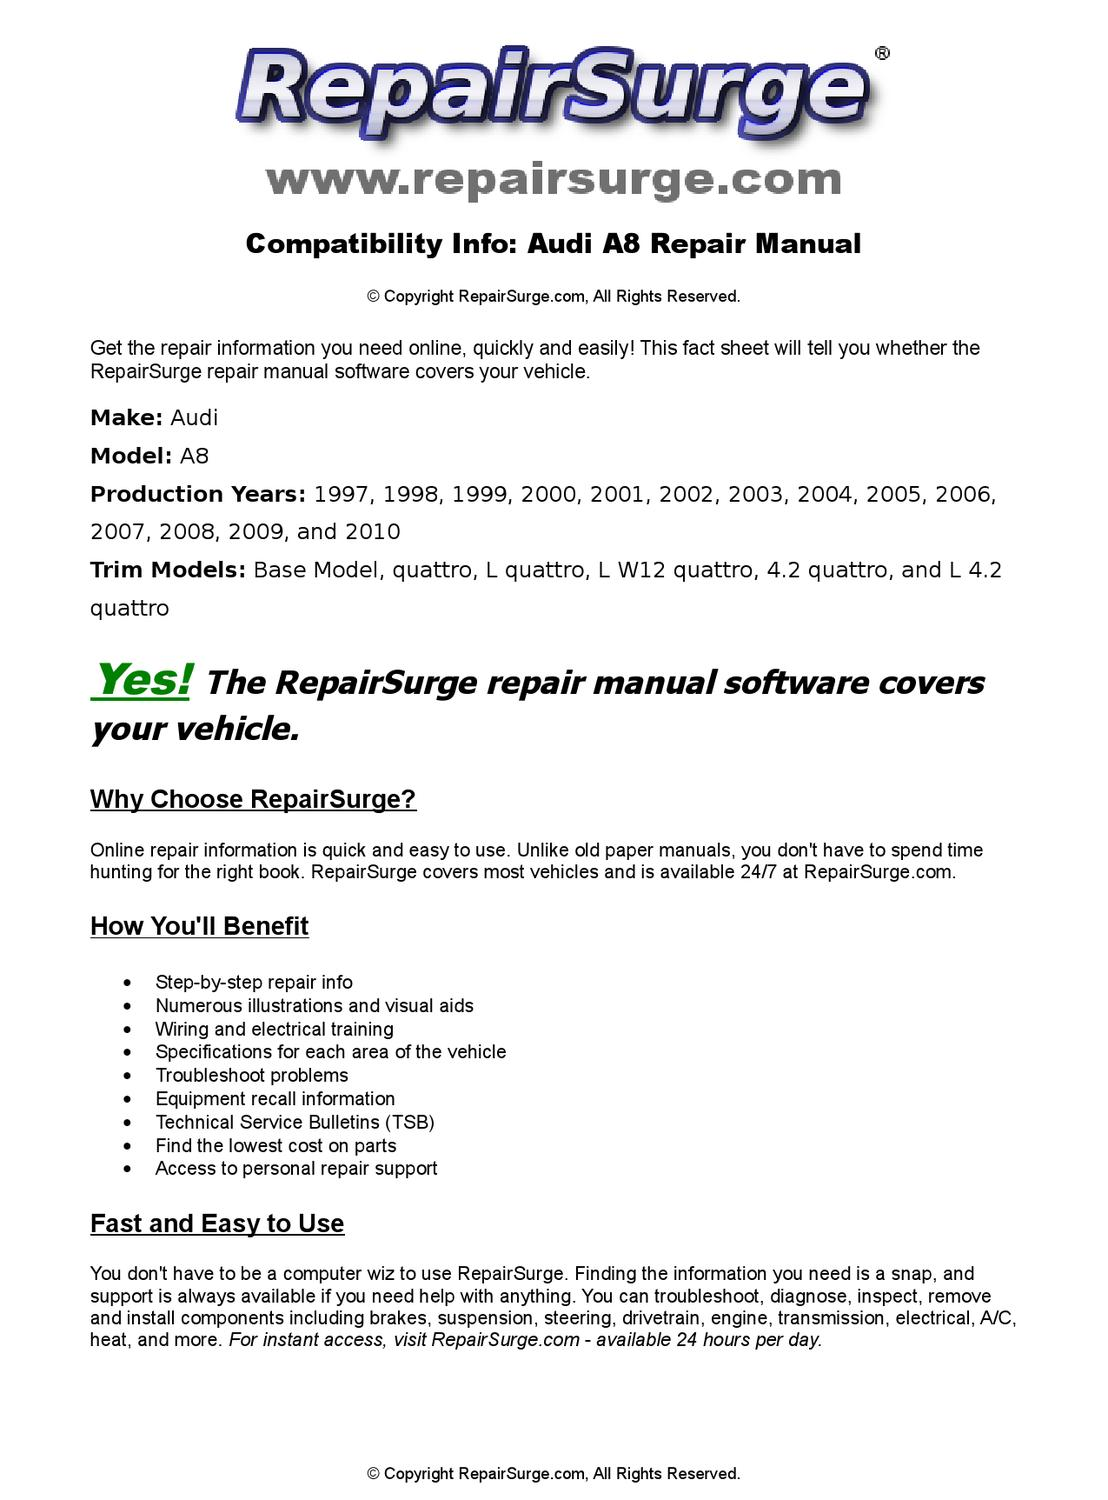 Audi A8 Online Repair Manual For 1997, 1998, 1999, 2000, 2001, 2002, 2003,  2004, 2005, 2006, 2007, 2 by RepairSurge - issuu